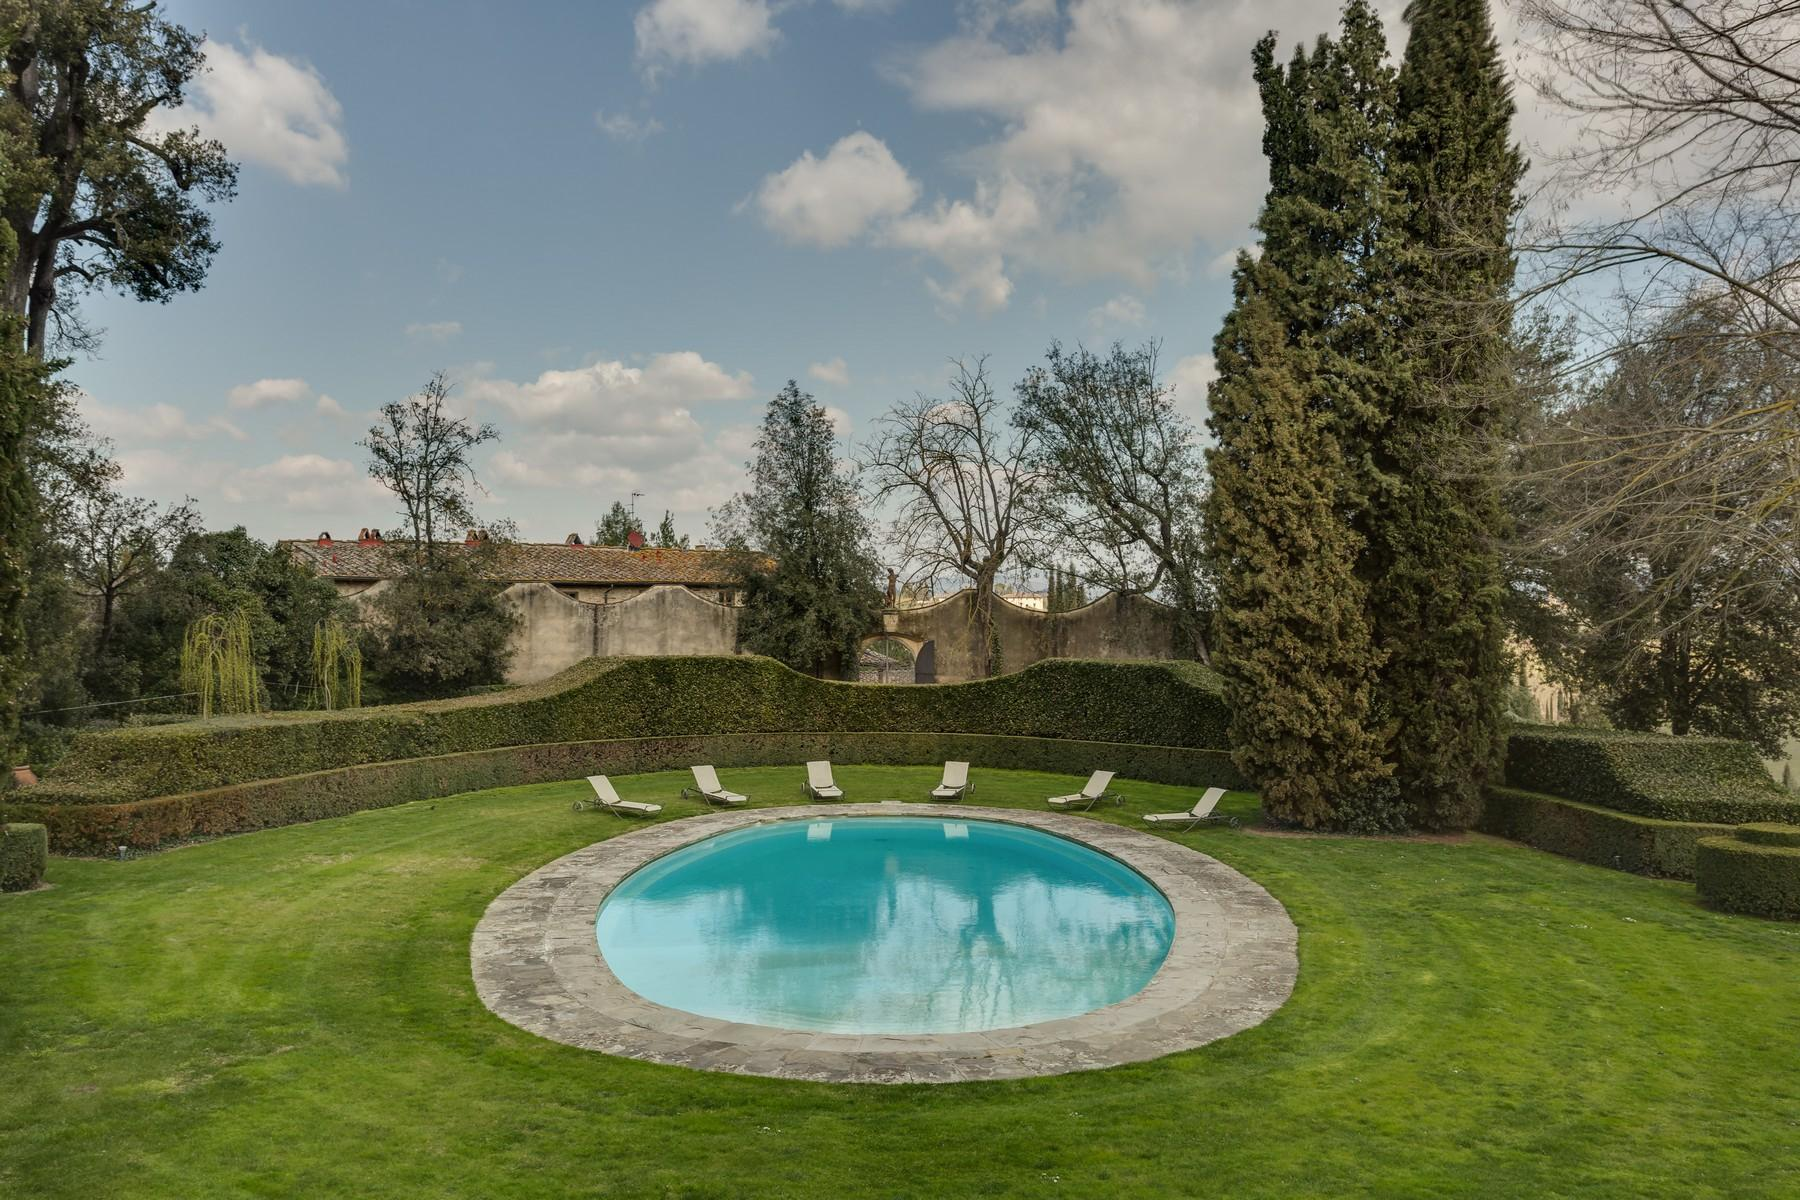 Marvellous Renaissance Villa with pool on the hills of Florence - 41